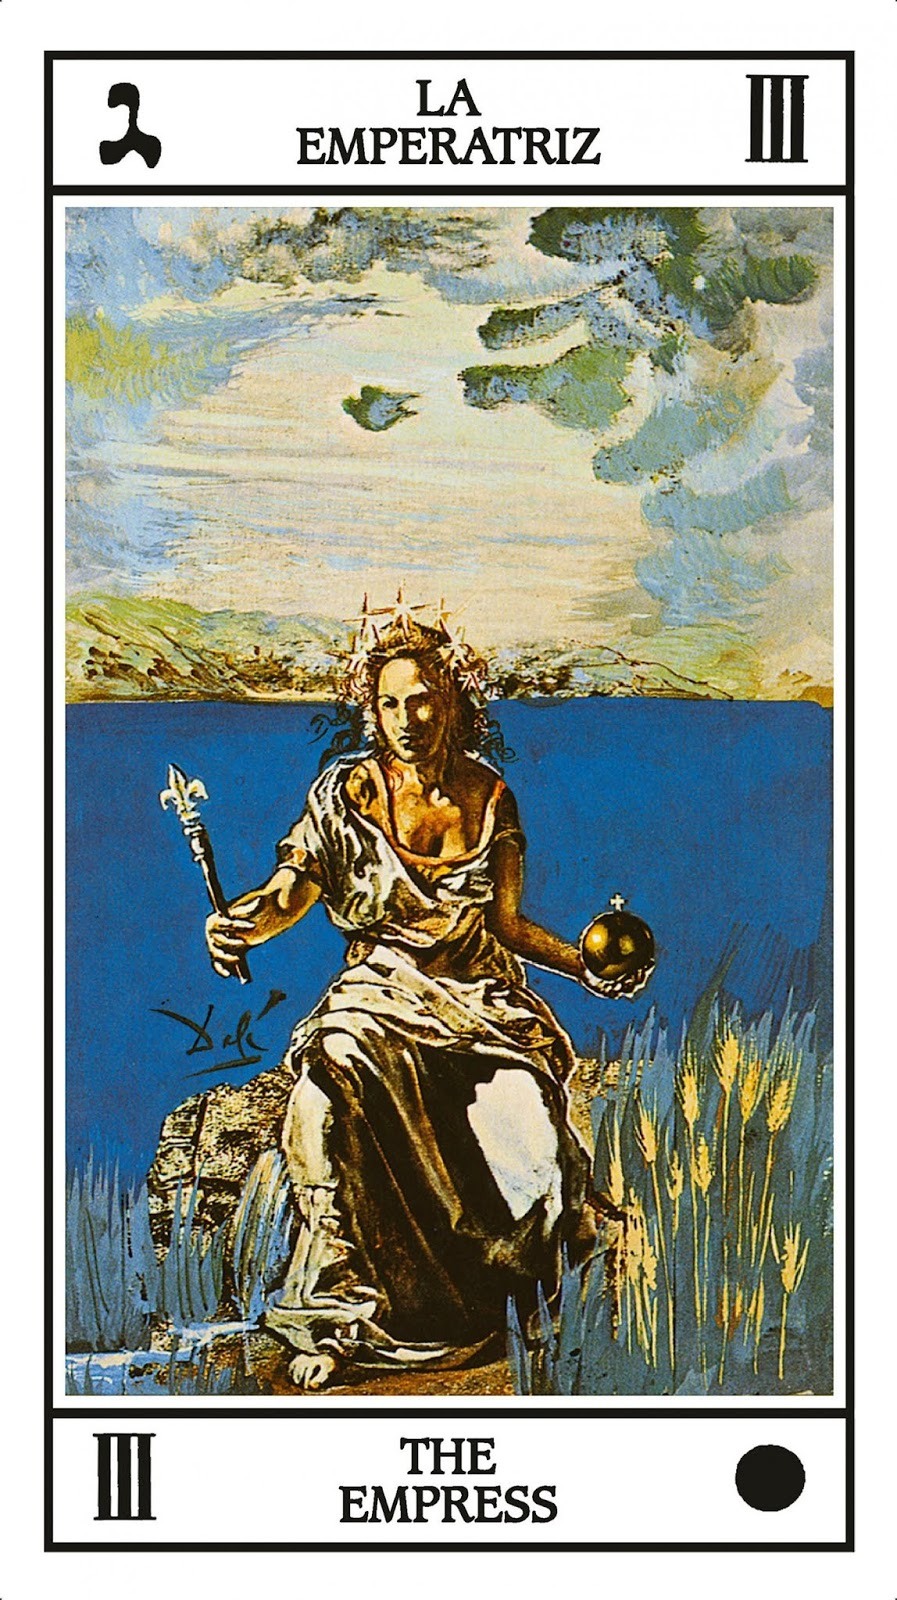 Salvador Dalí's Tarot Cards Give Us The Chance To Rediscover Surrealism